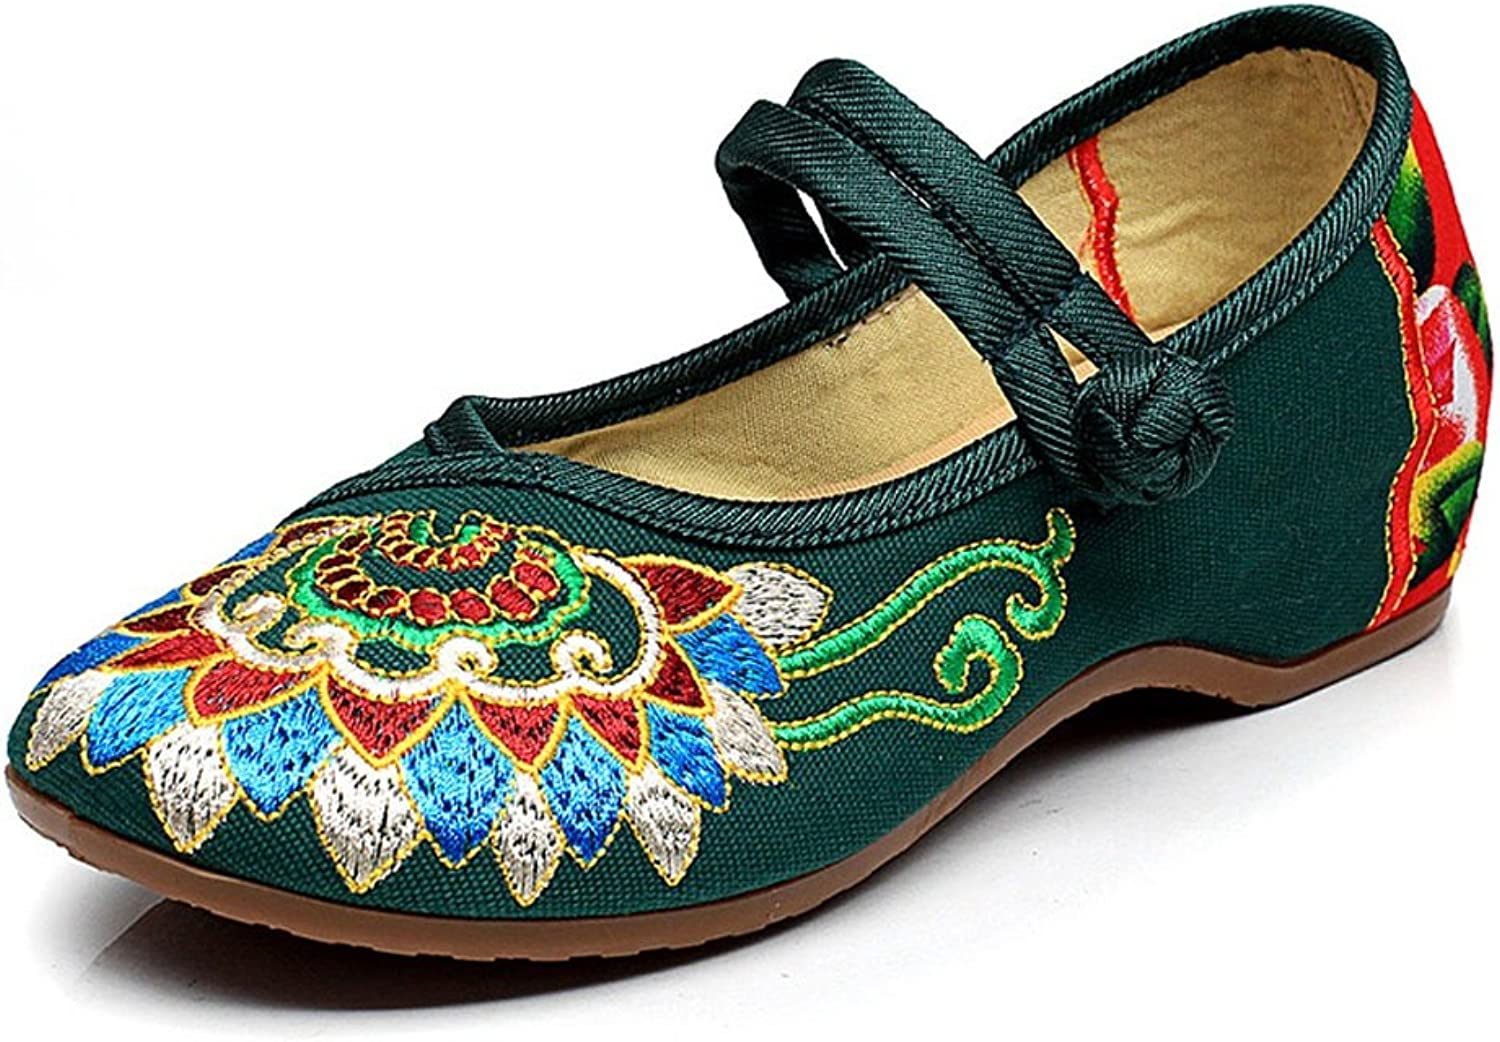 Vintage Ethnic Style Embroidered shoes Casual Low Heel Breathable Cloth shoes Comfortable Ballet shoes ( color   Green , Size   36 )